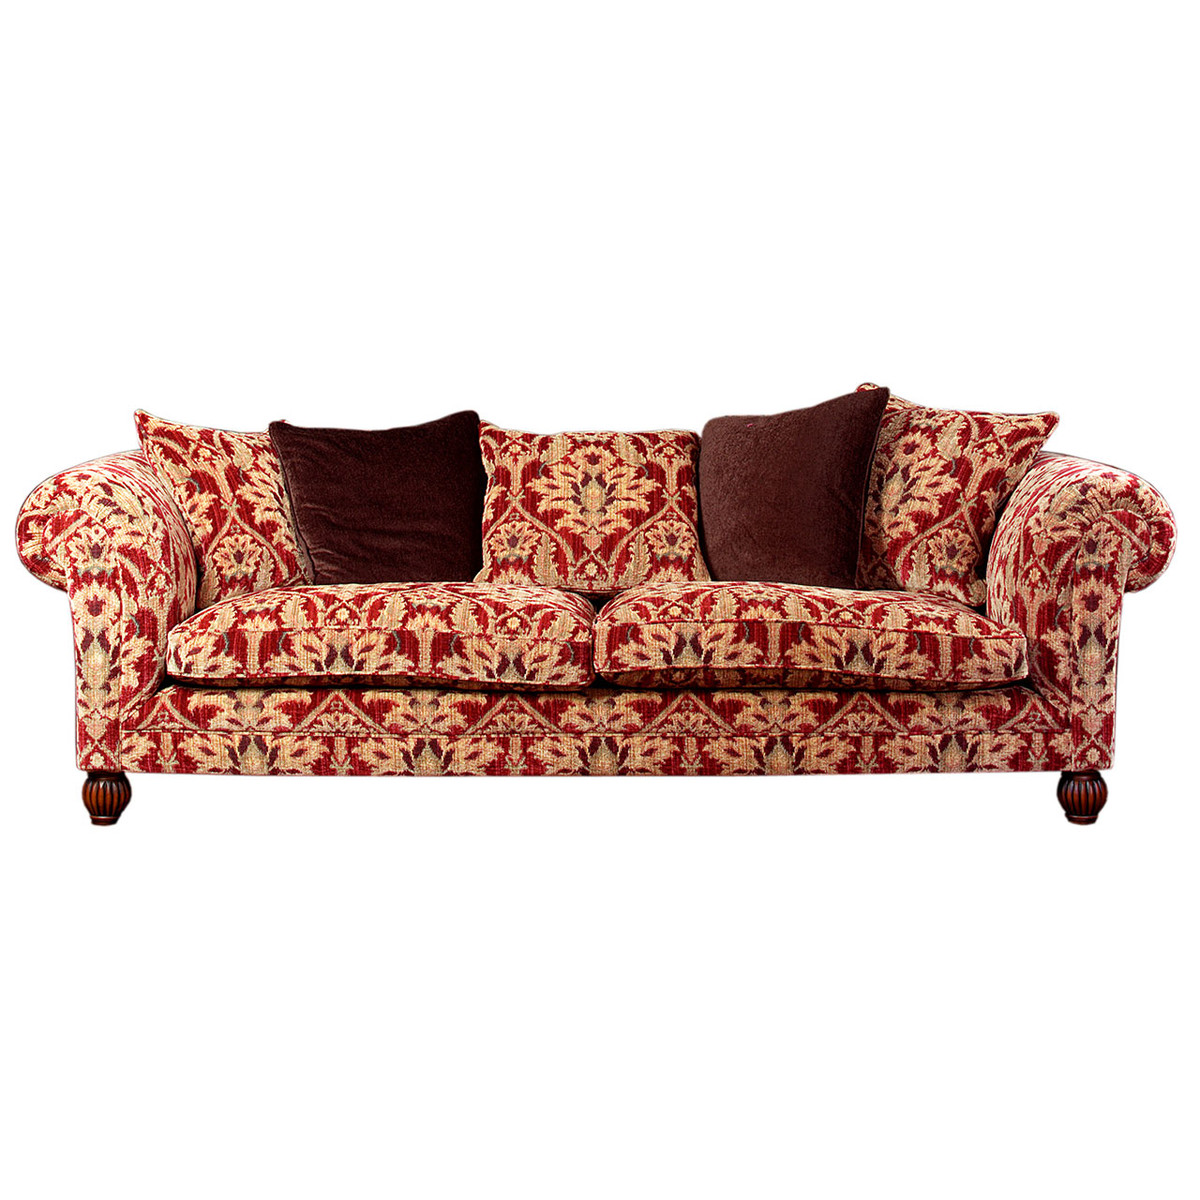 Australian Made Sofas Elgar 3 Seater Sofa